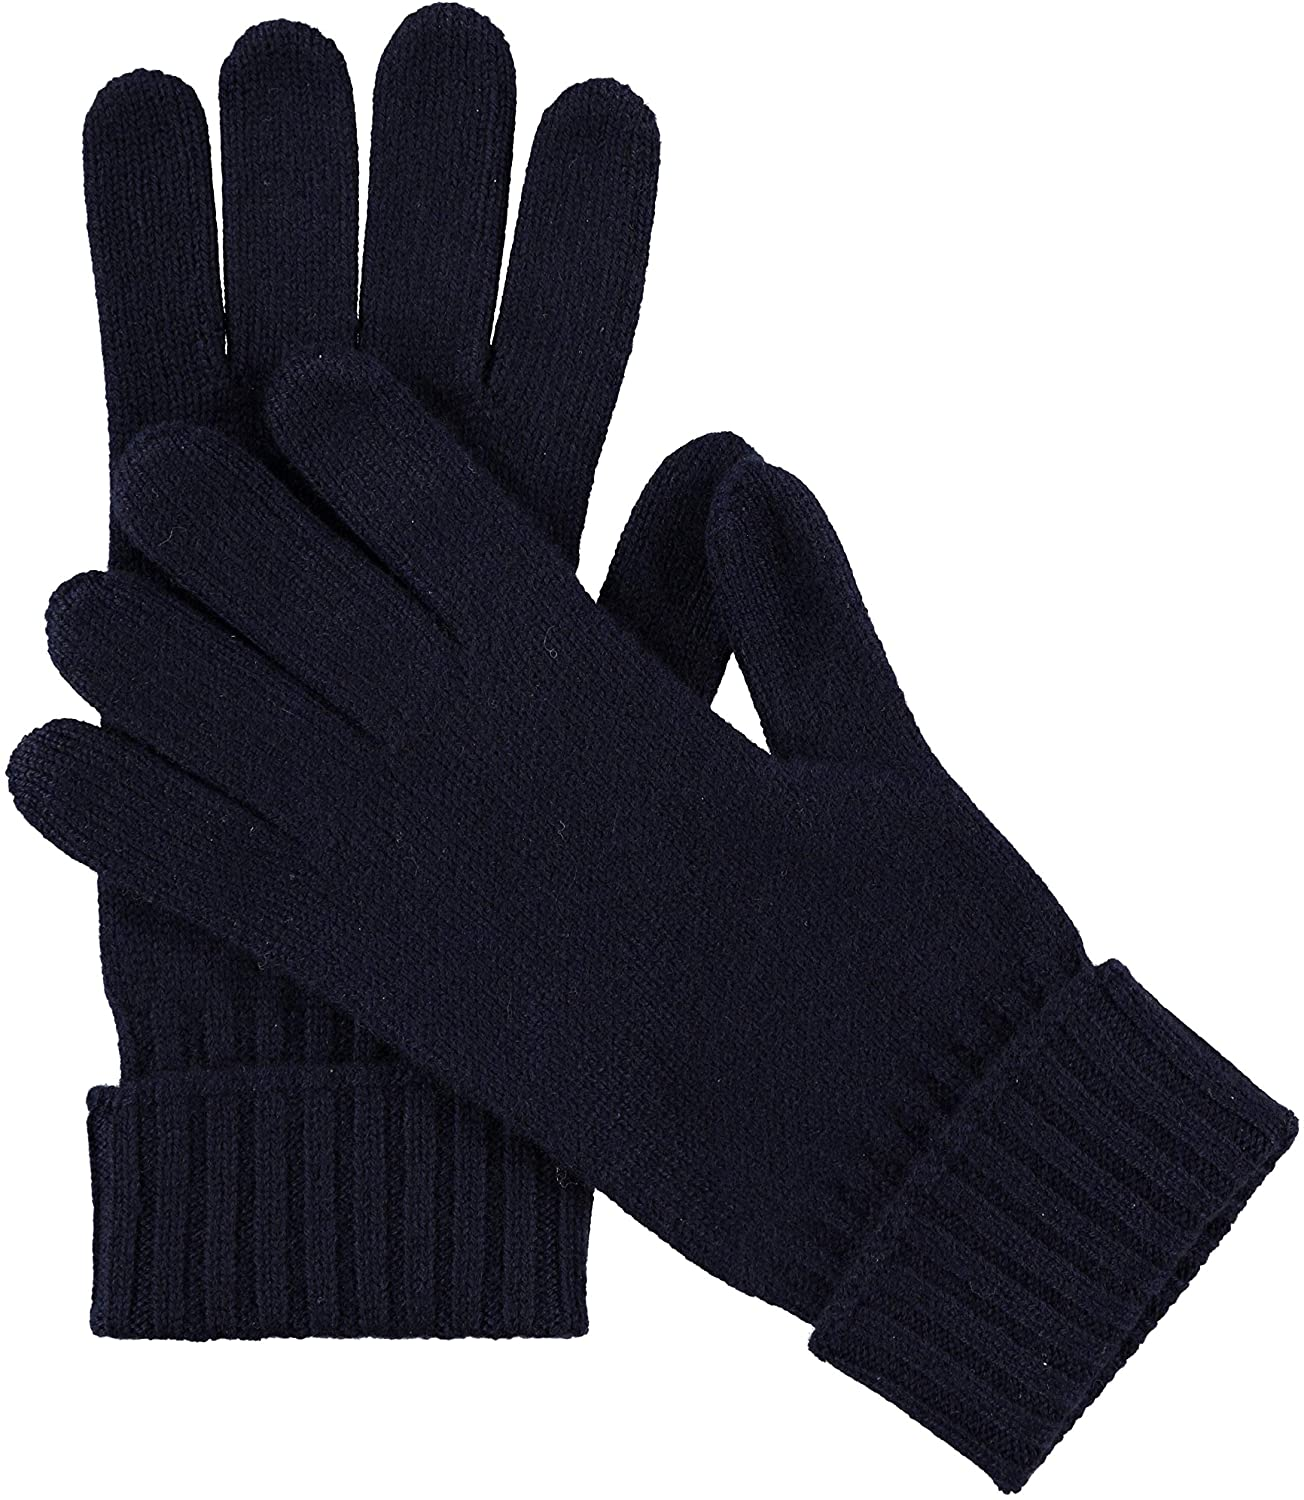 Manio Cashmere Womens 100% Cashmere Knitted Gloves Pure Soft Comfortable With Ribbed Cuffed